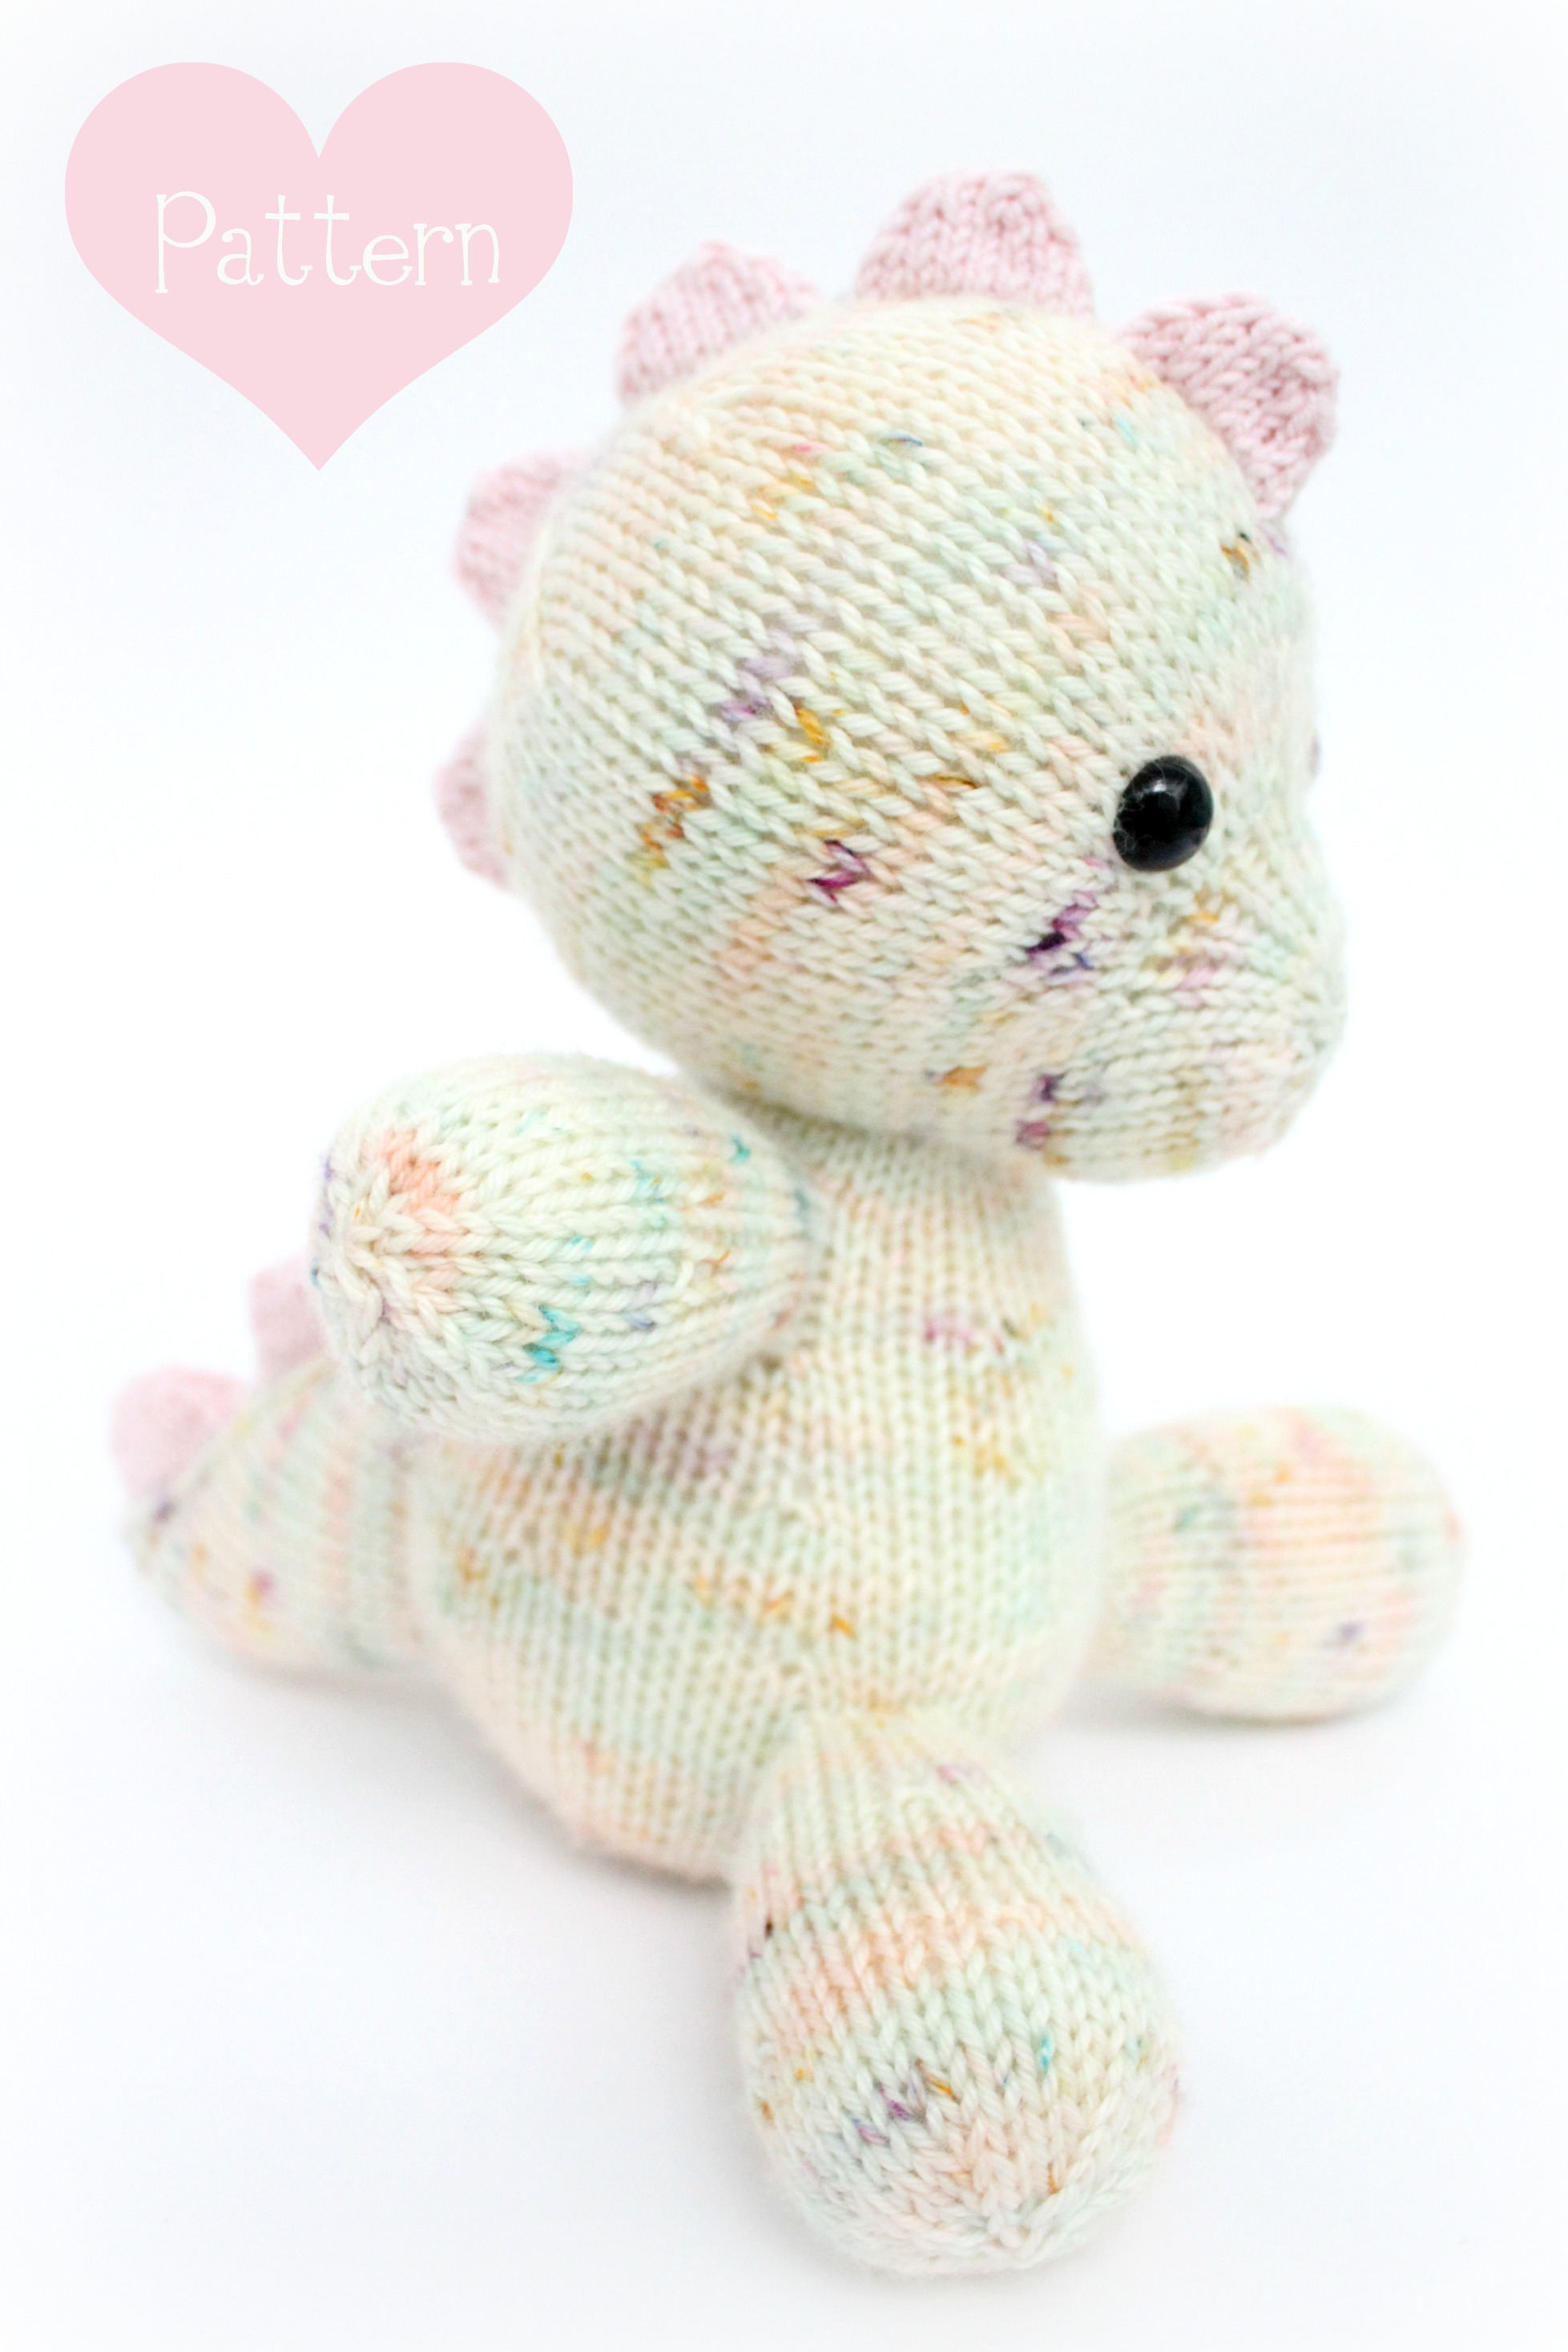 Knitting Patterns For Baby Toys Free Knitting Pattern Daisy The Ba Dino Pdf Knitting Pattern